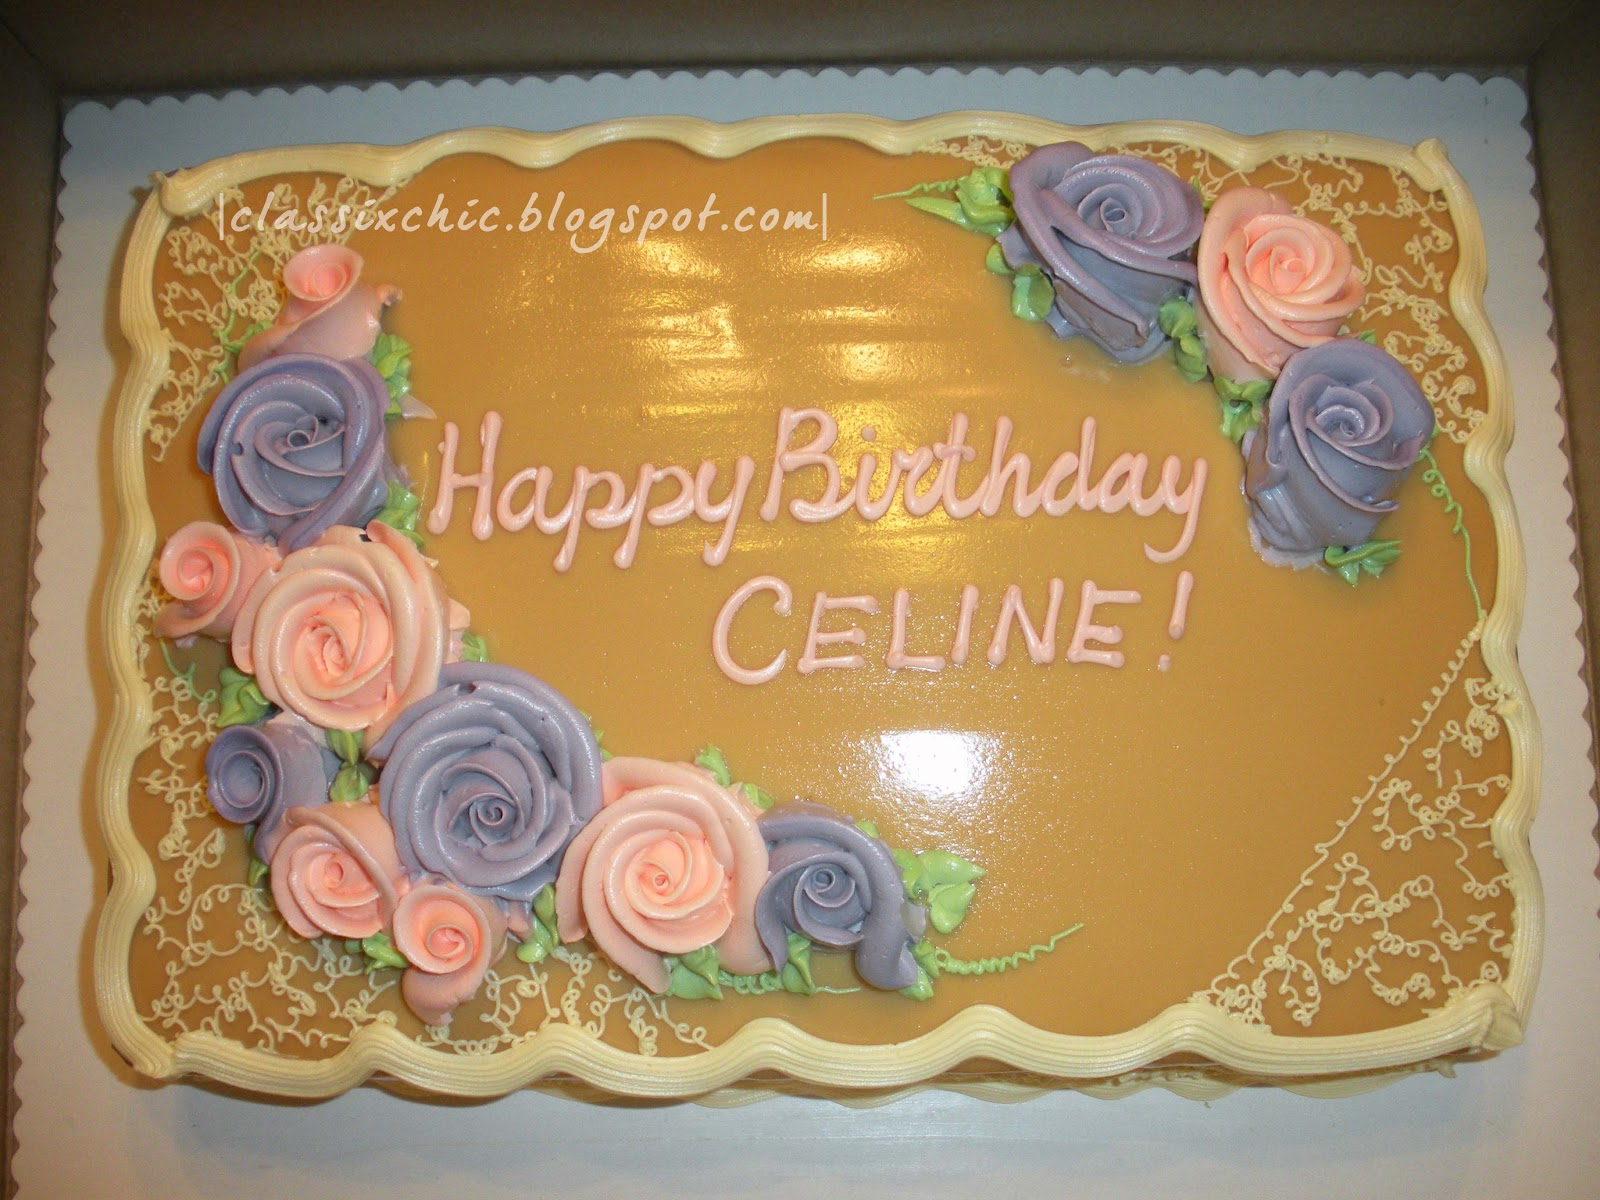 Classic Yet Simple Cake Designs Using Er Icing Is A Big Yes Who Wouldn T Fall In Love With These Cakes